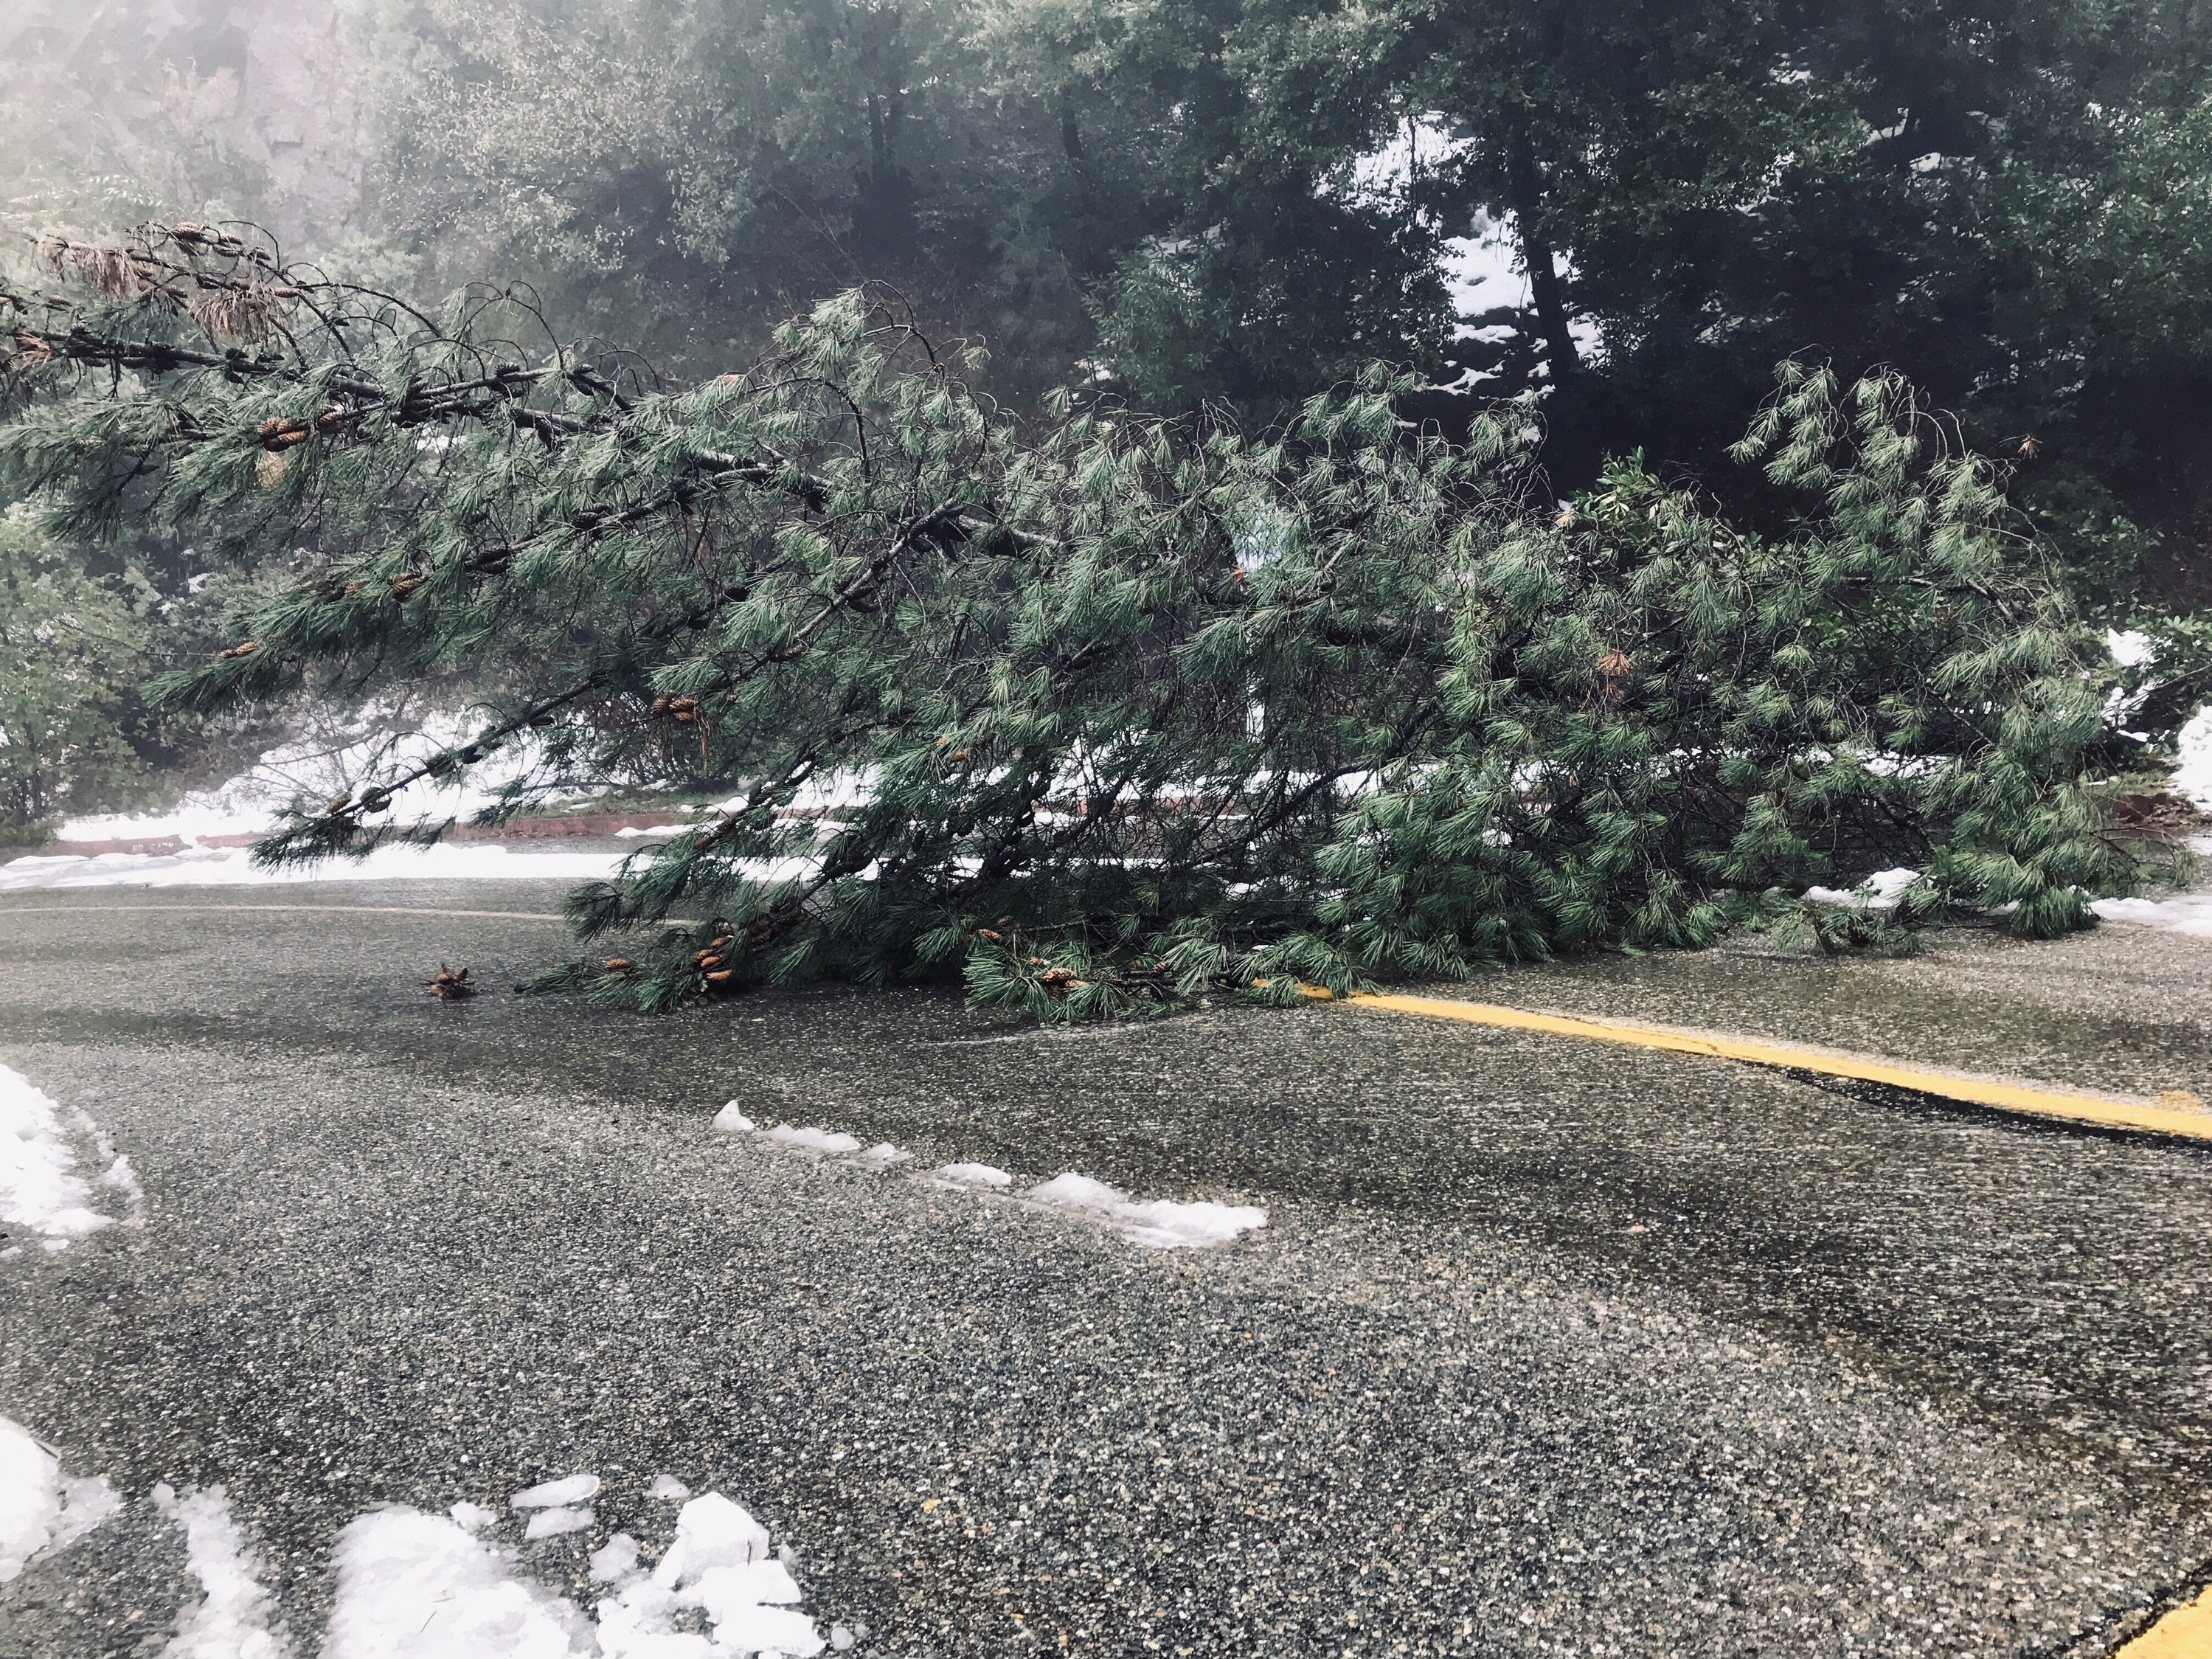 A large tree on Thursday, Feb. 14, 2019 blocks the overflow parking lot entrance at Centimudi boat ramp at Lake Shasta.